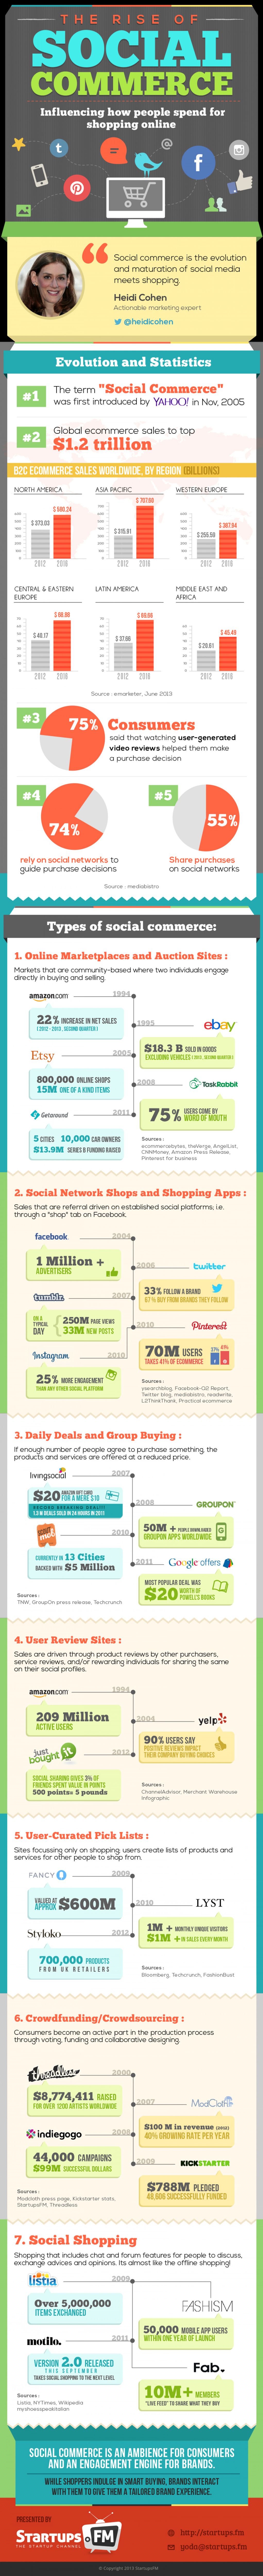 Rise Of Social Commerce Infographic